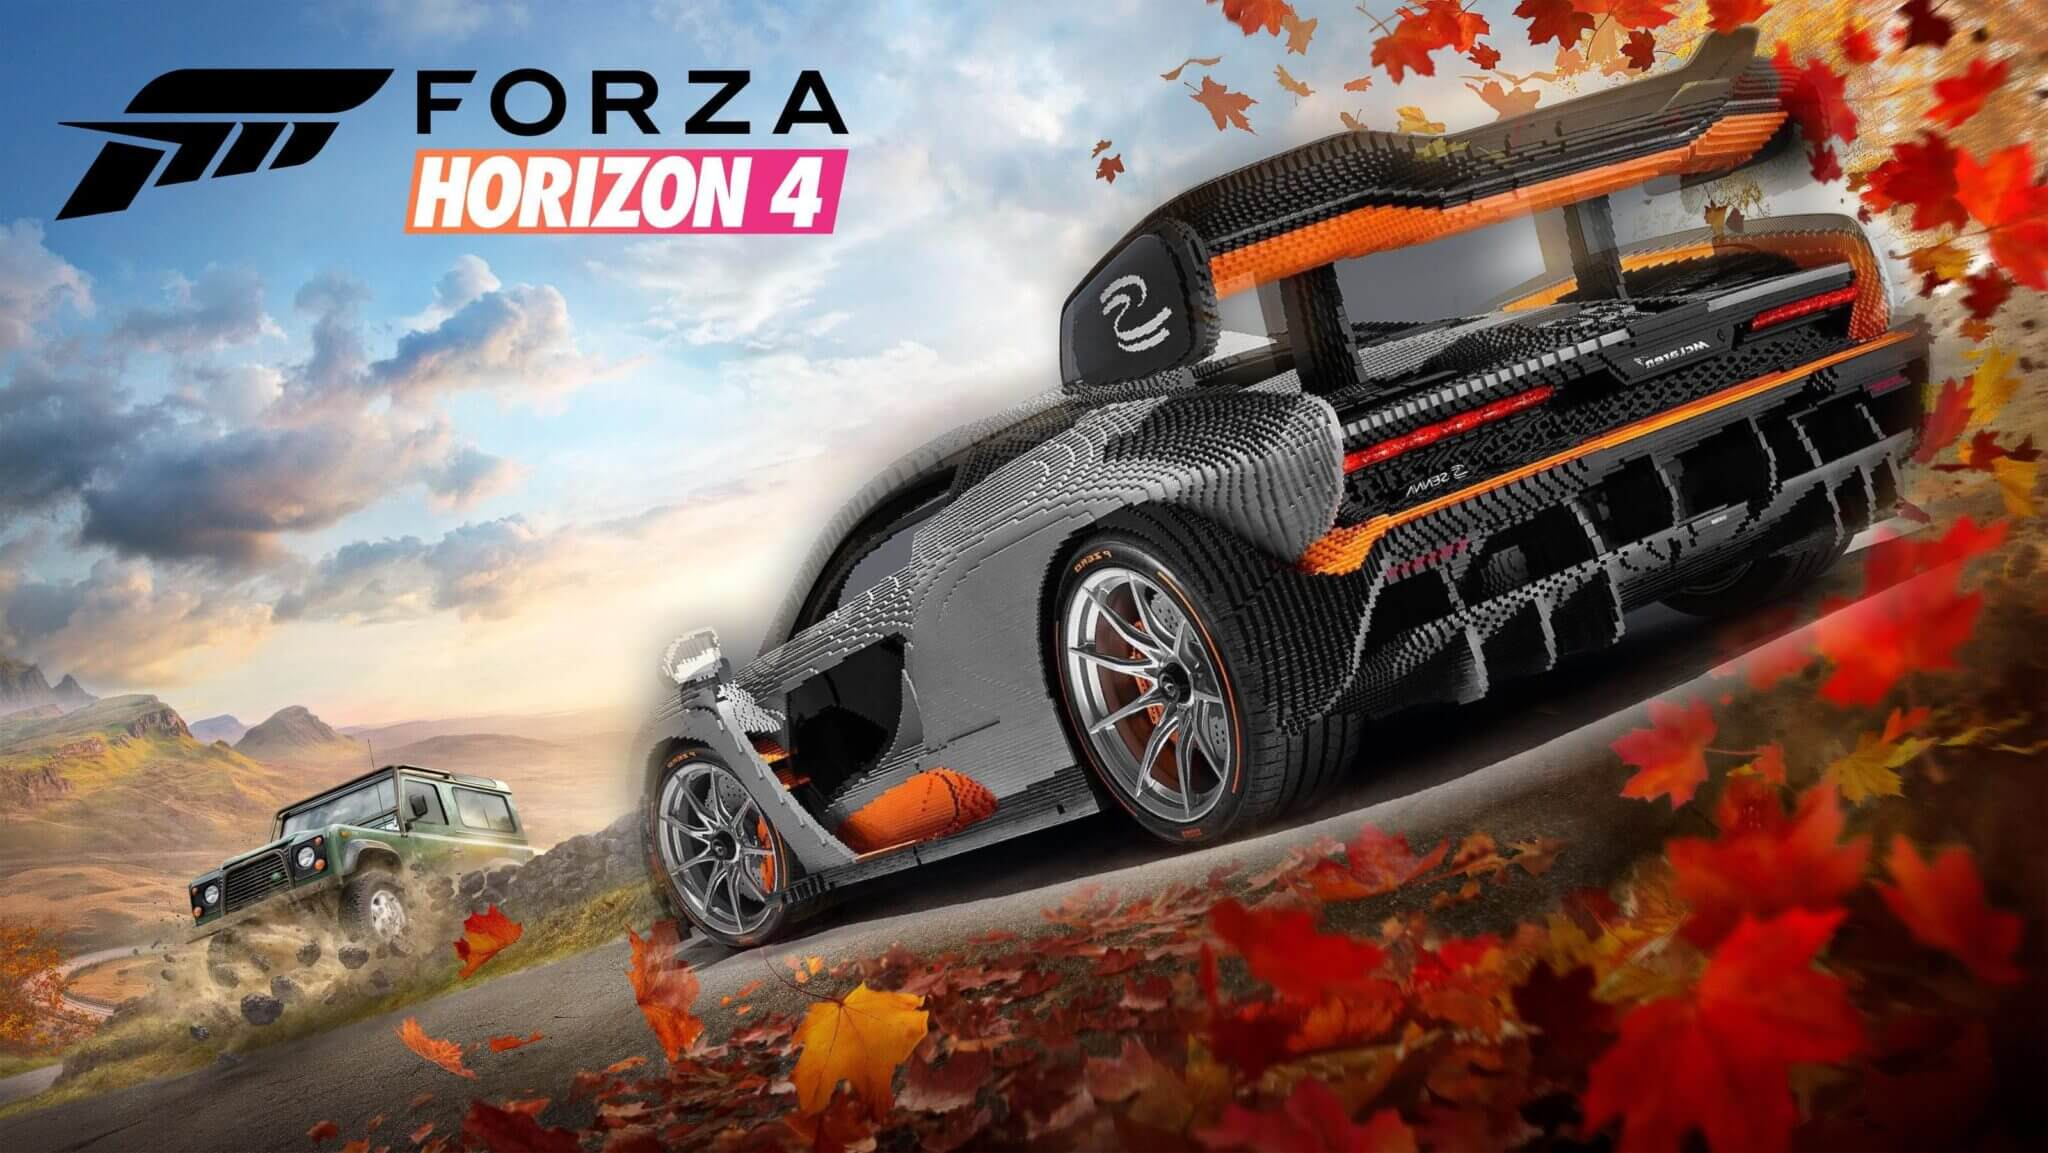 Will Forza Horizon 4's Next Expansion Feature LEGO?